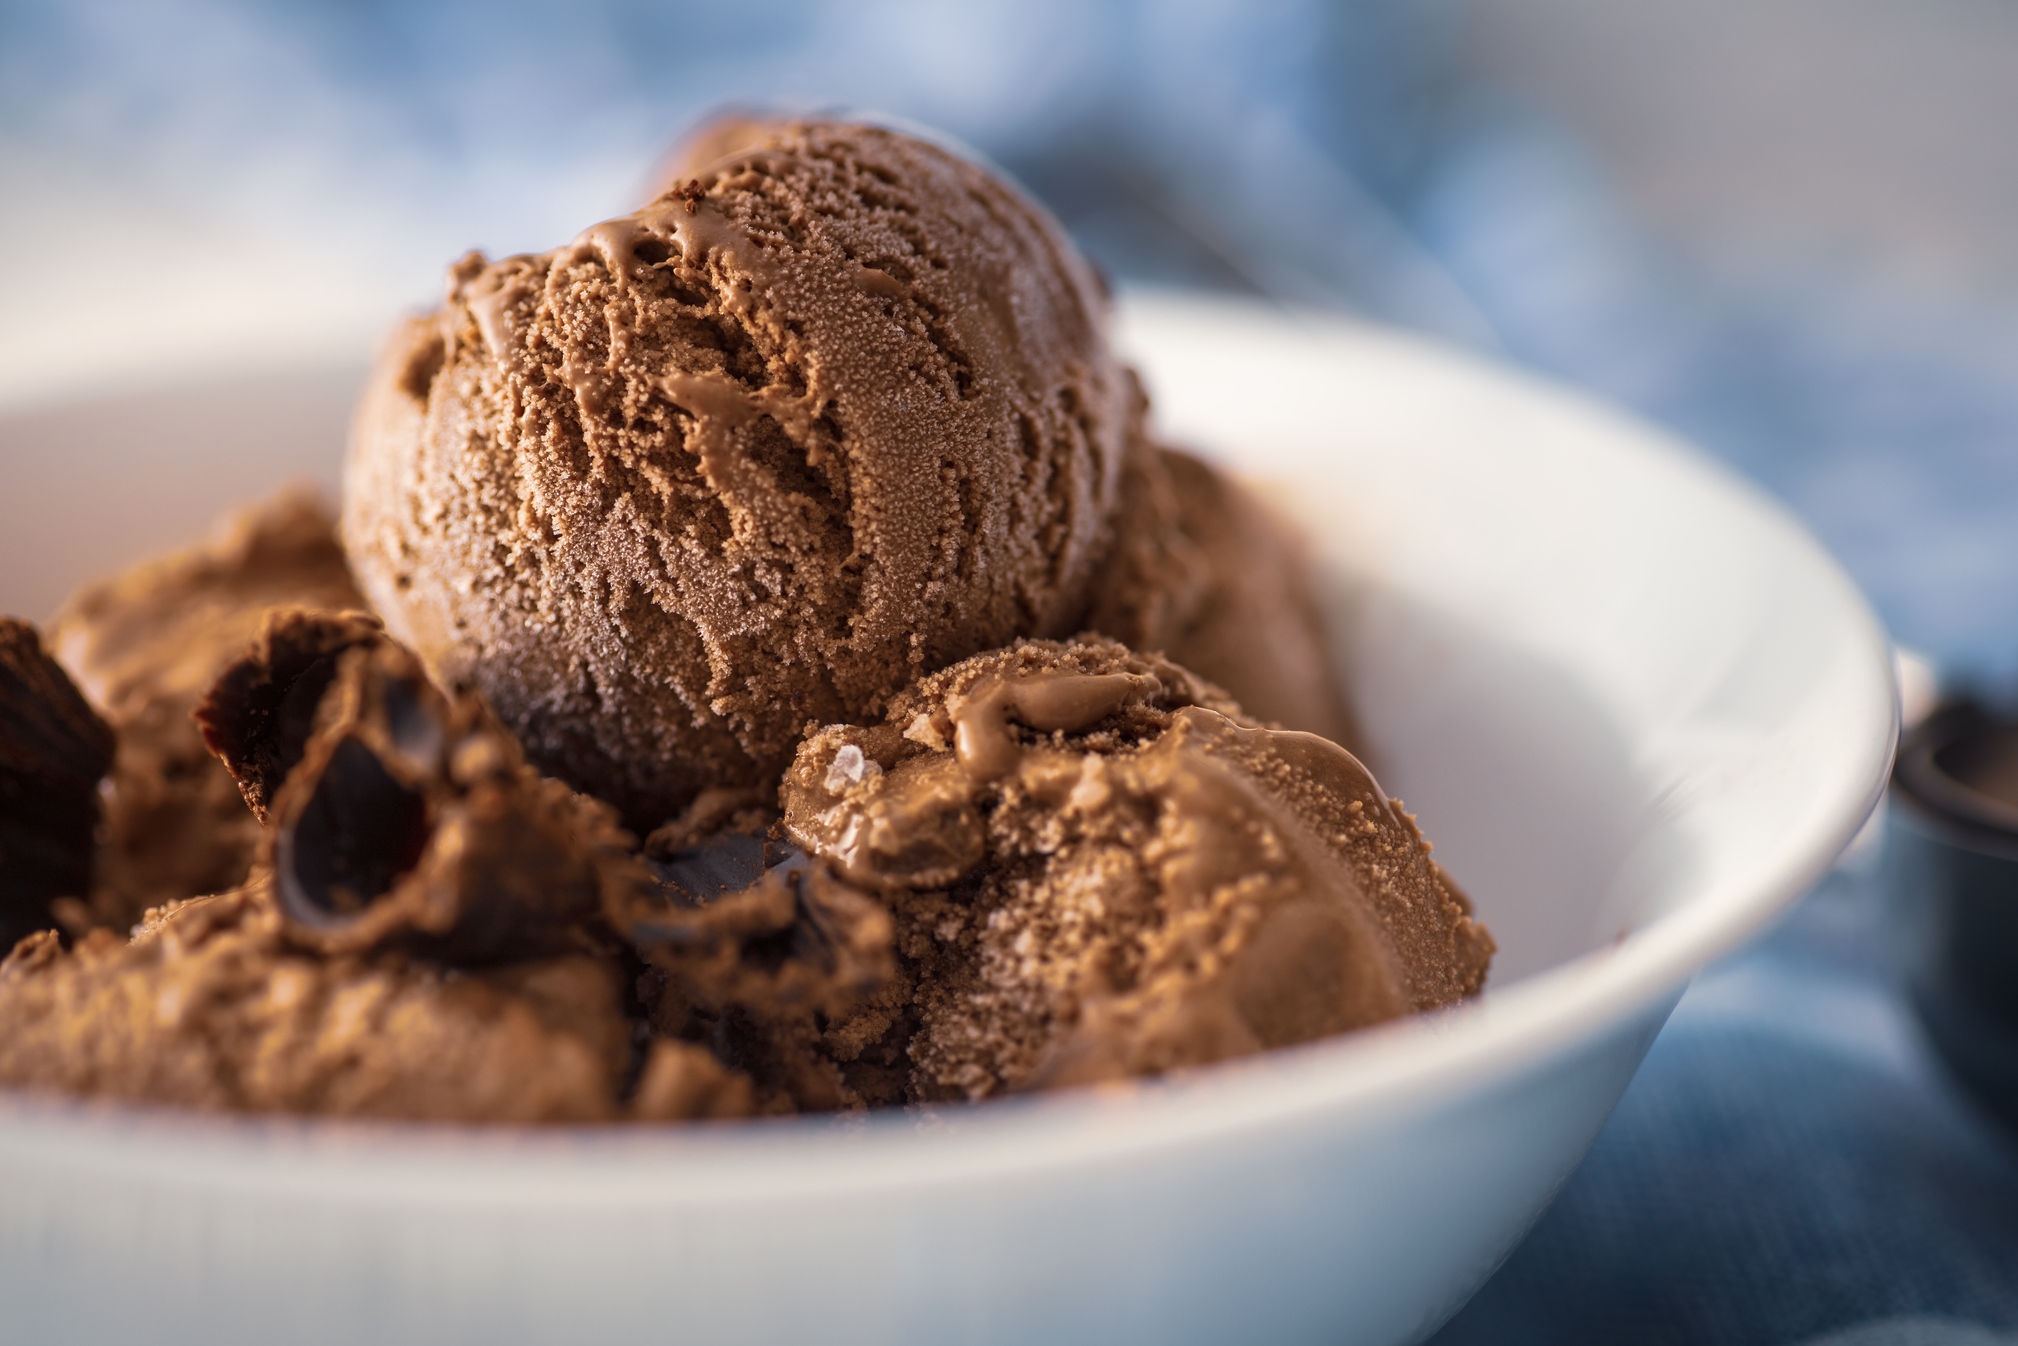 We Tasted 9 Chocolate Ice Creams, And Our Favorite Will Surprise You